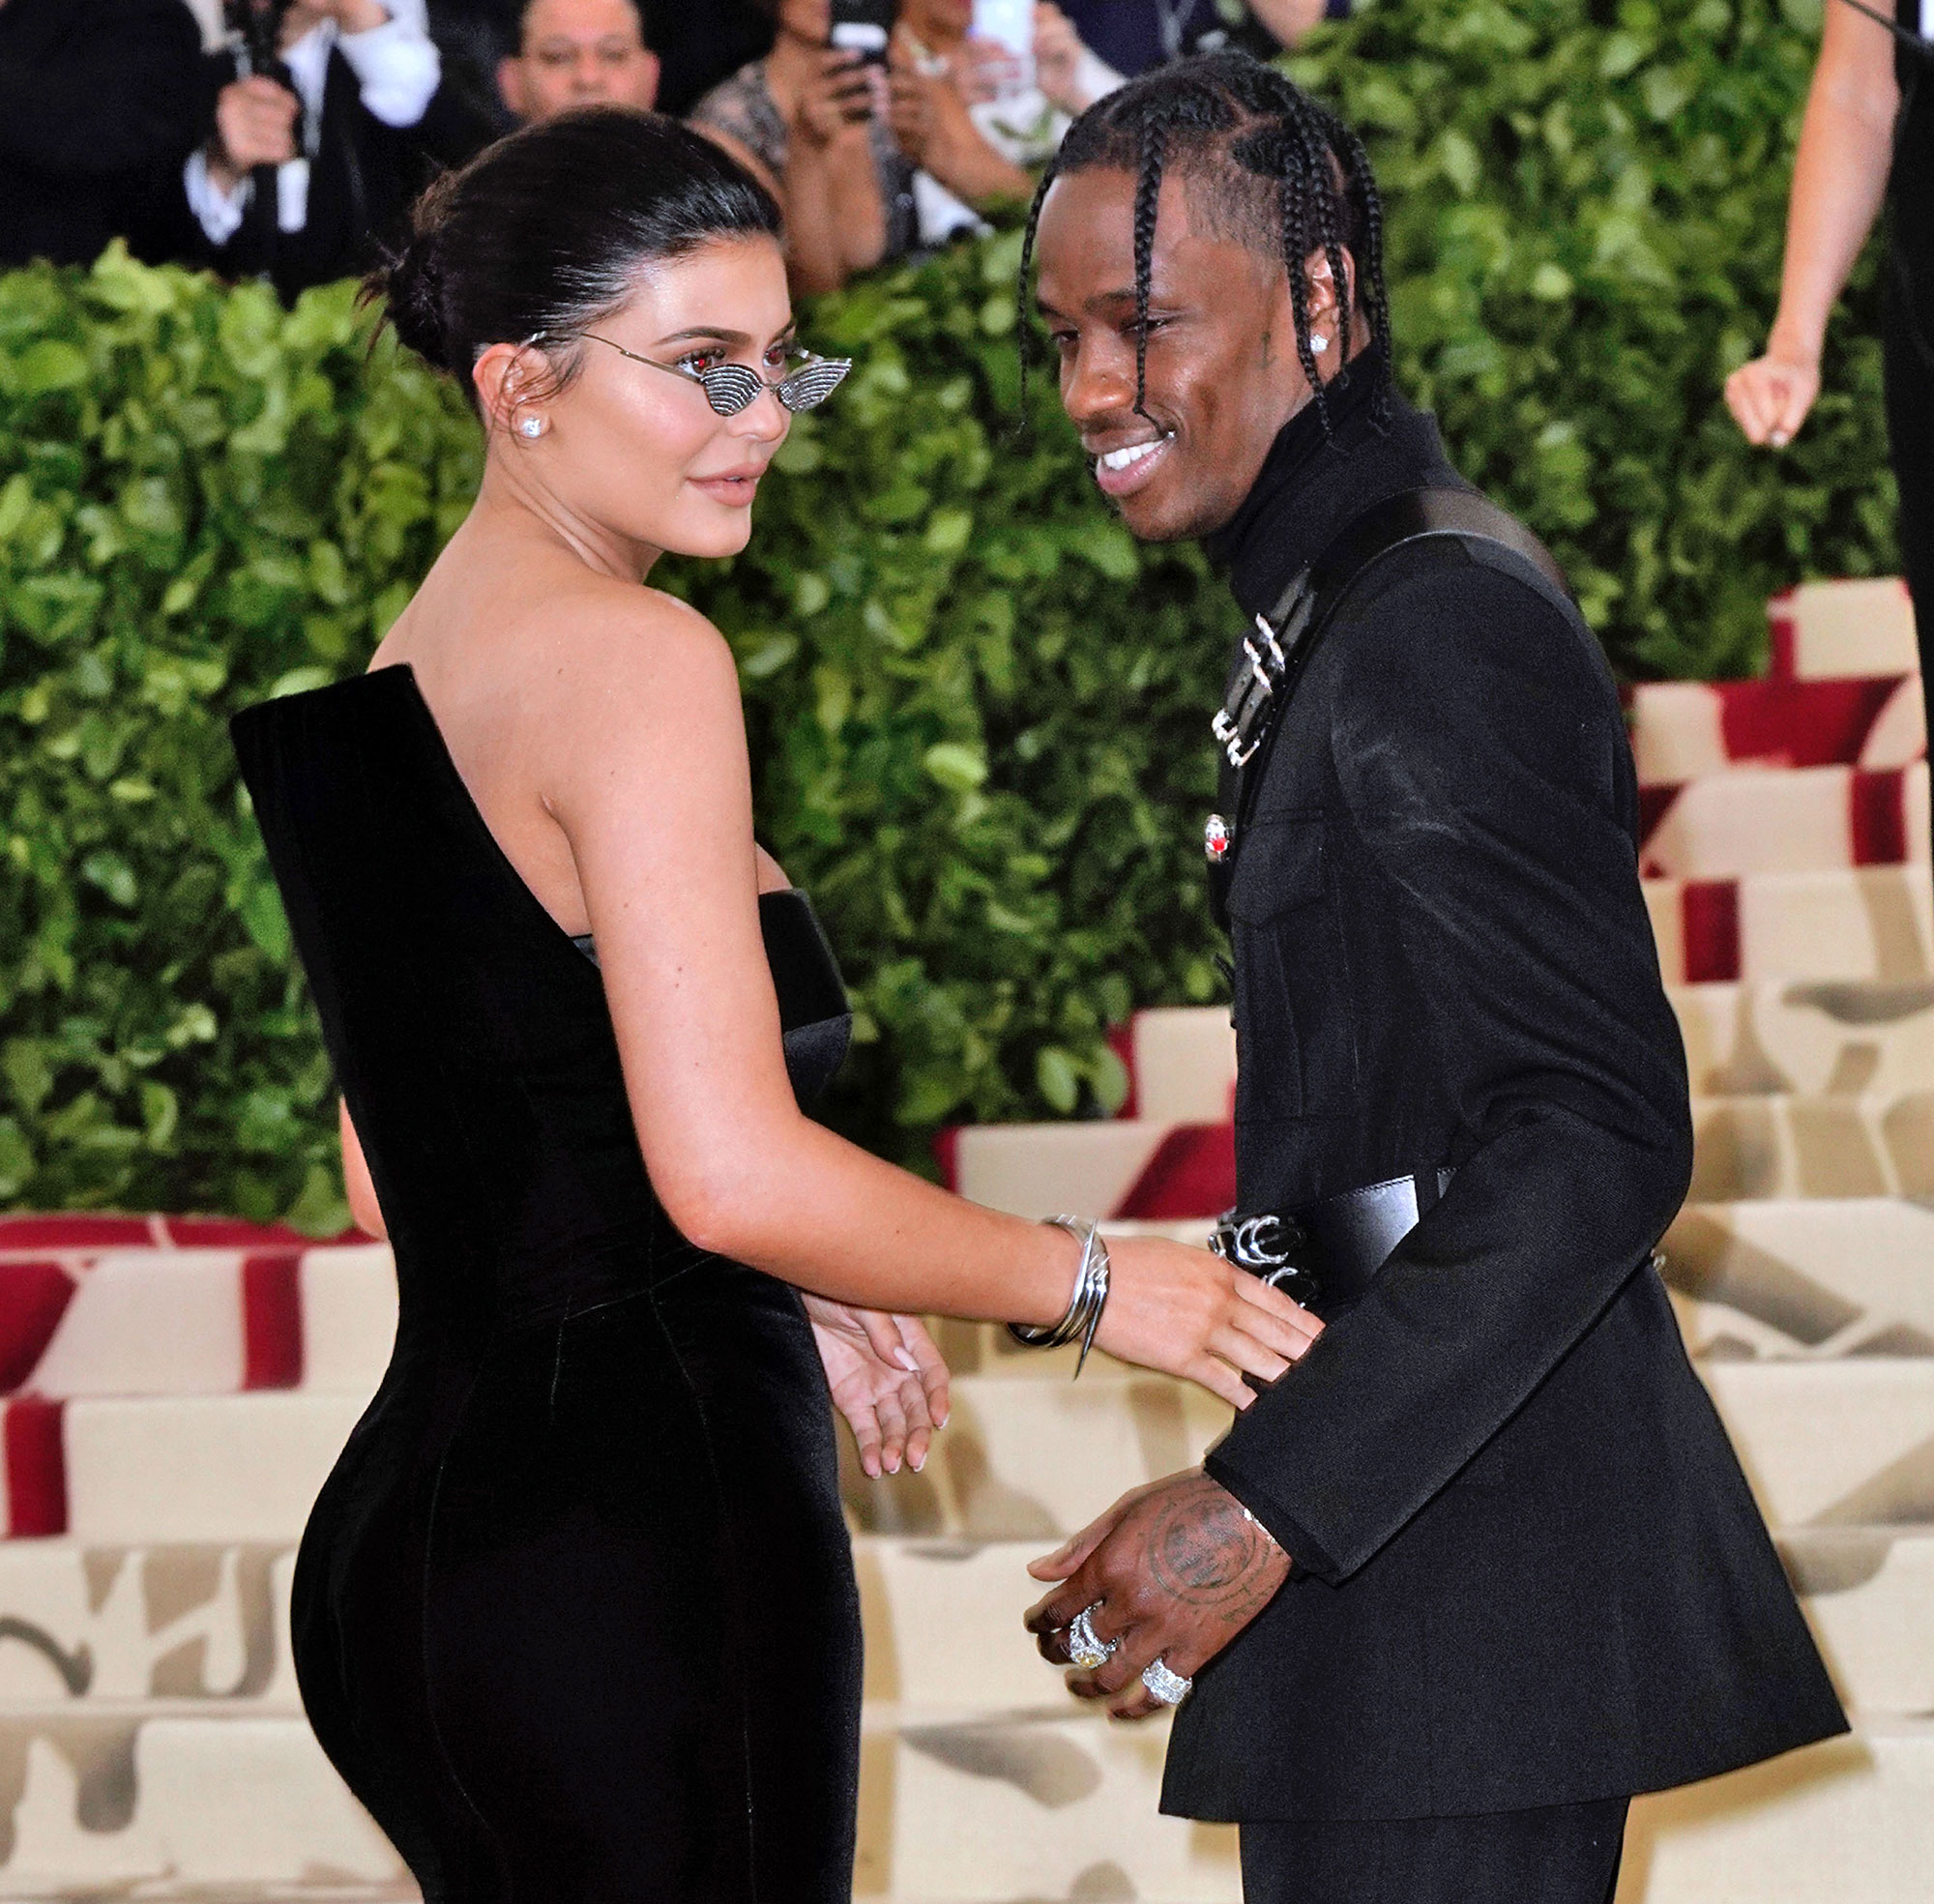 """Kylie and Travis Sweetest Quotes - The twosome took some mommy and daddy time for what Jenner referred to as a """" Baecation """" in early April 2019."""